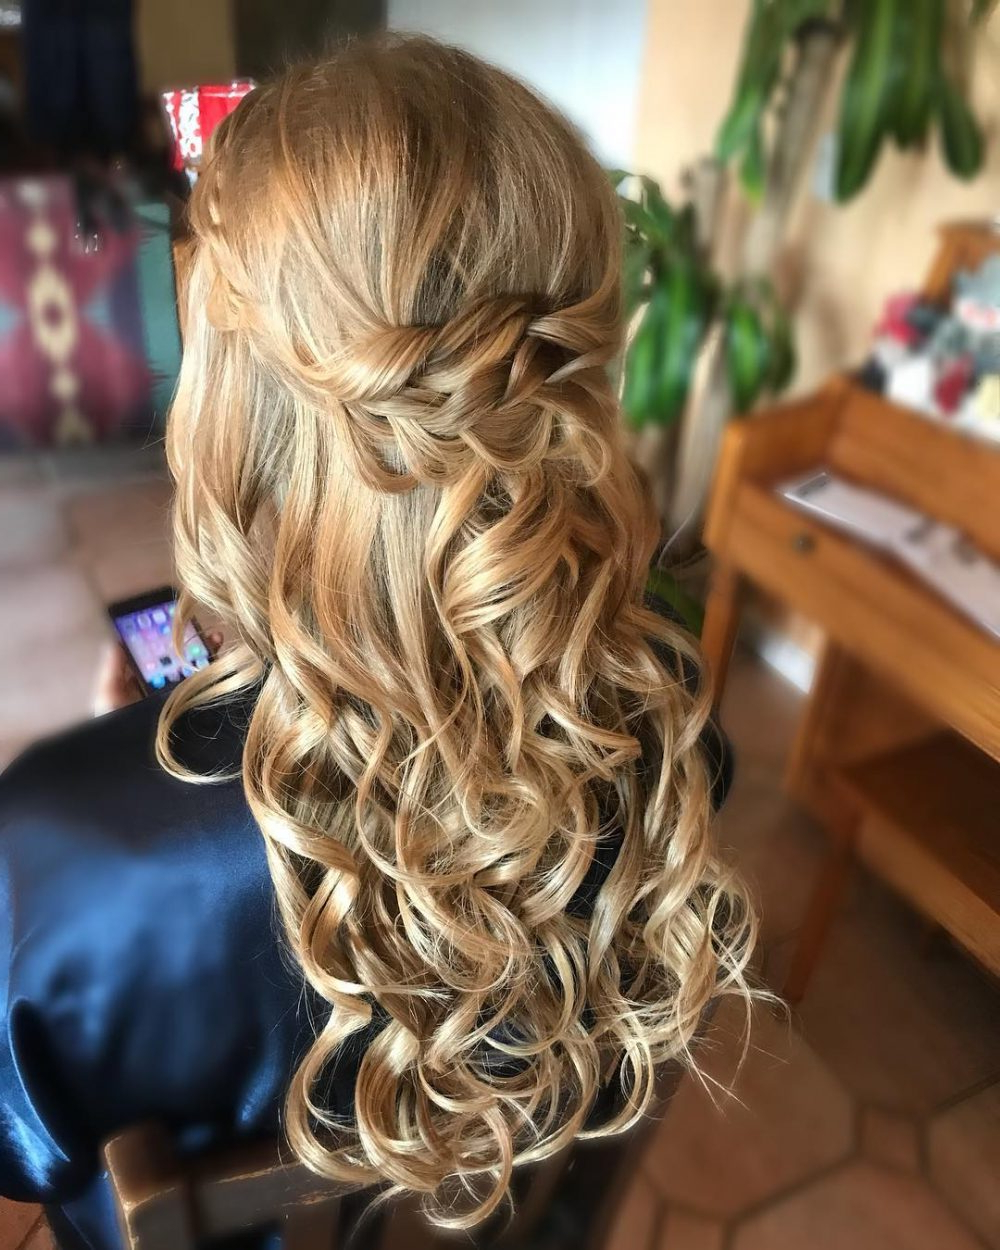 24 Gorgeous Wedding Hairstyles For Long Hair In 2019 For 2018 Voluminous Side Wedding Updos (View 6 of 20)